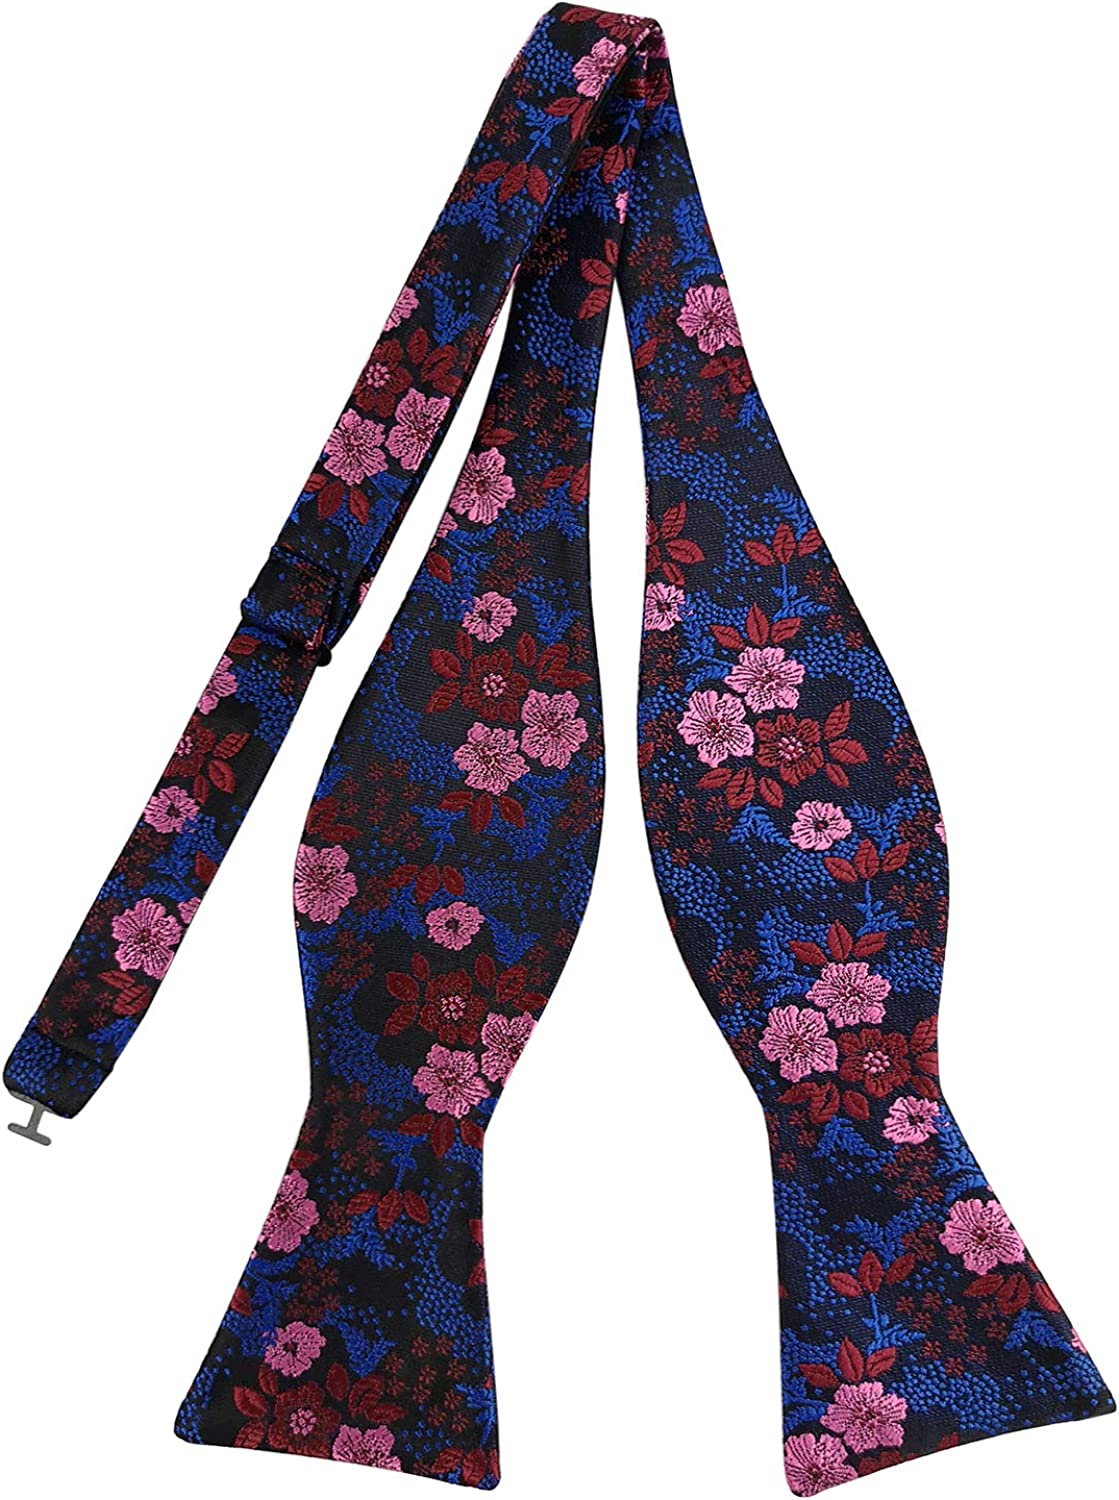 PenSee Mens Self Bow Tie Modern Floral Woven Silk Bow Ties